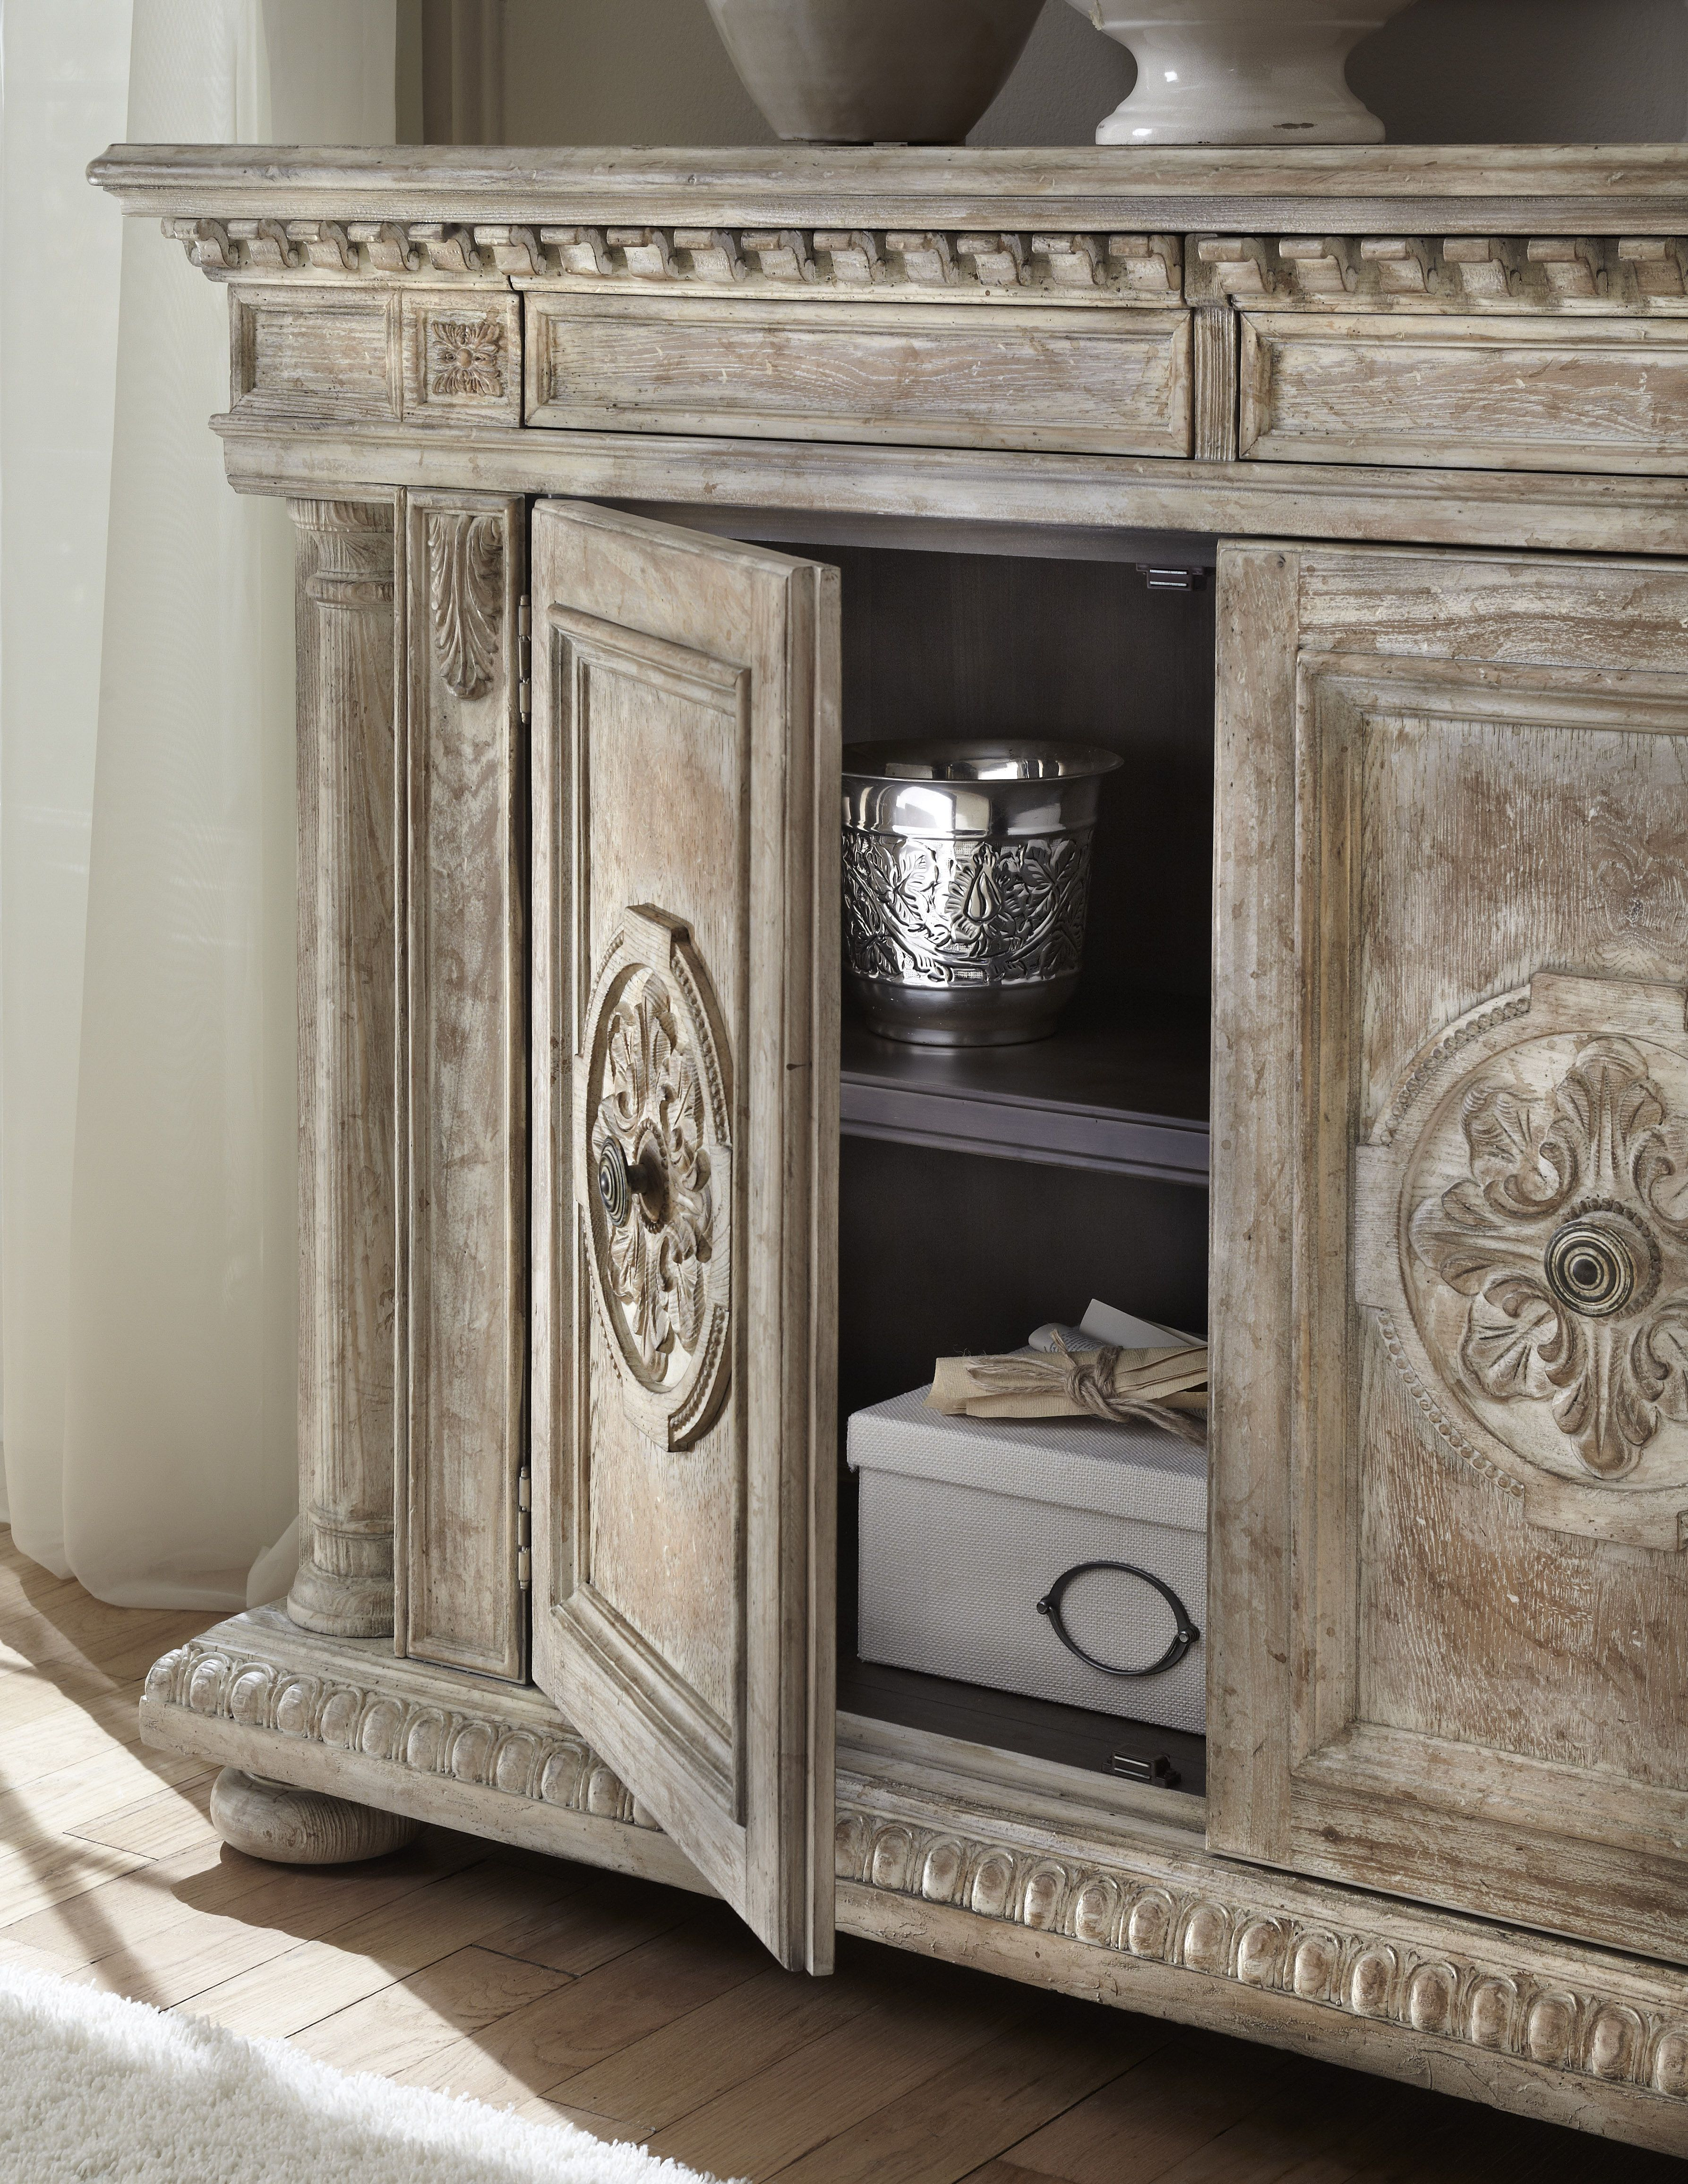 Pulaski Furniture Ranks Among The Best Known Furniture Brands Offering  Bedroom, Dining, Accents, Curios And Display Cabinets.